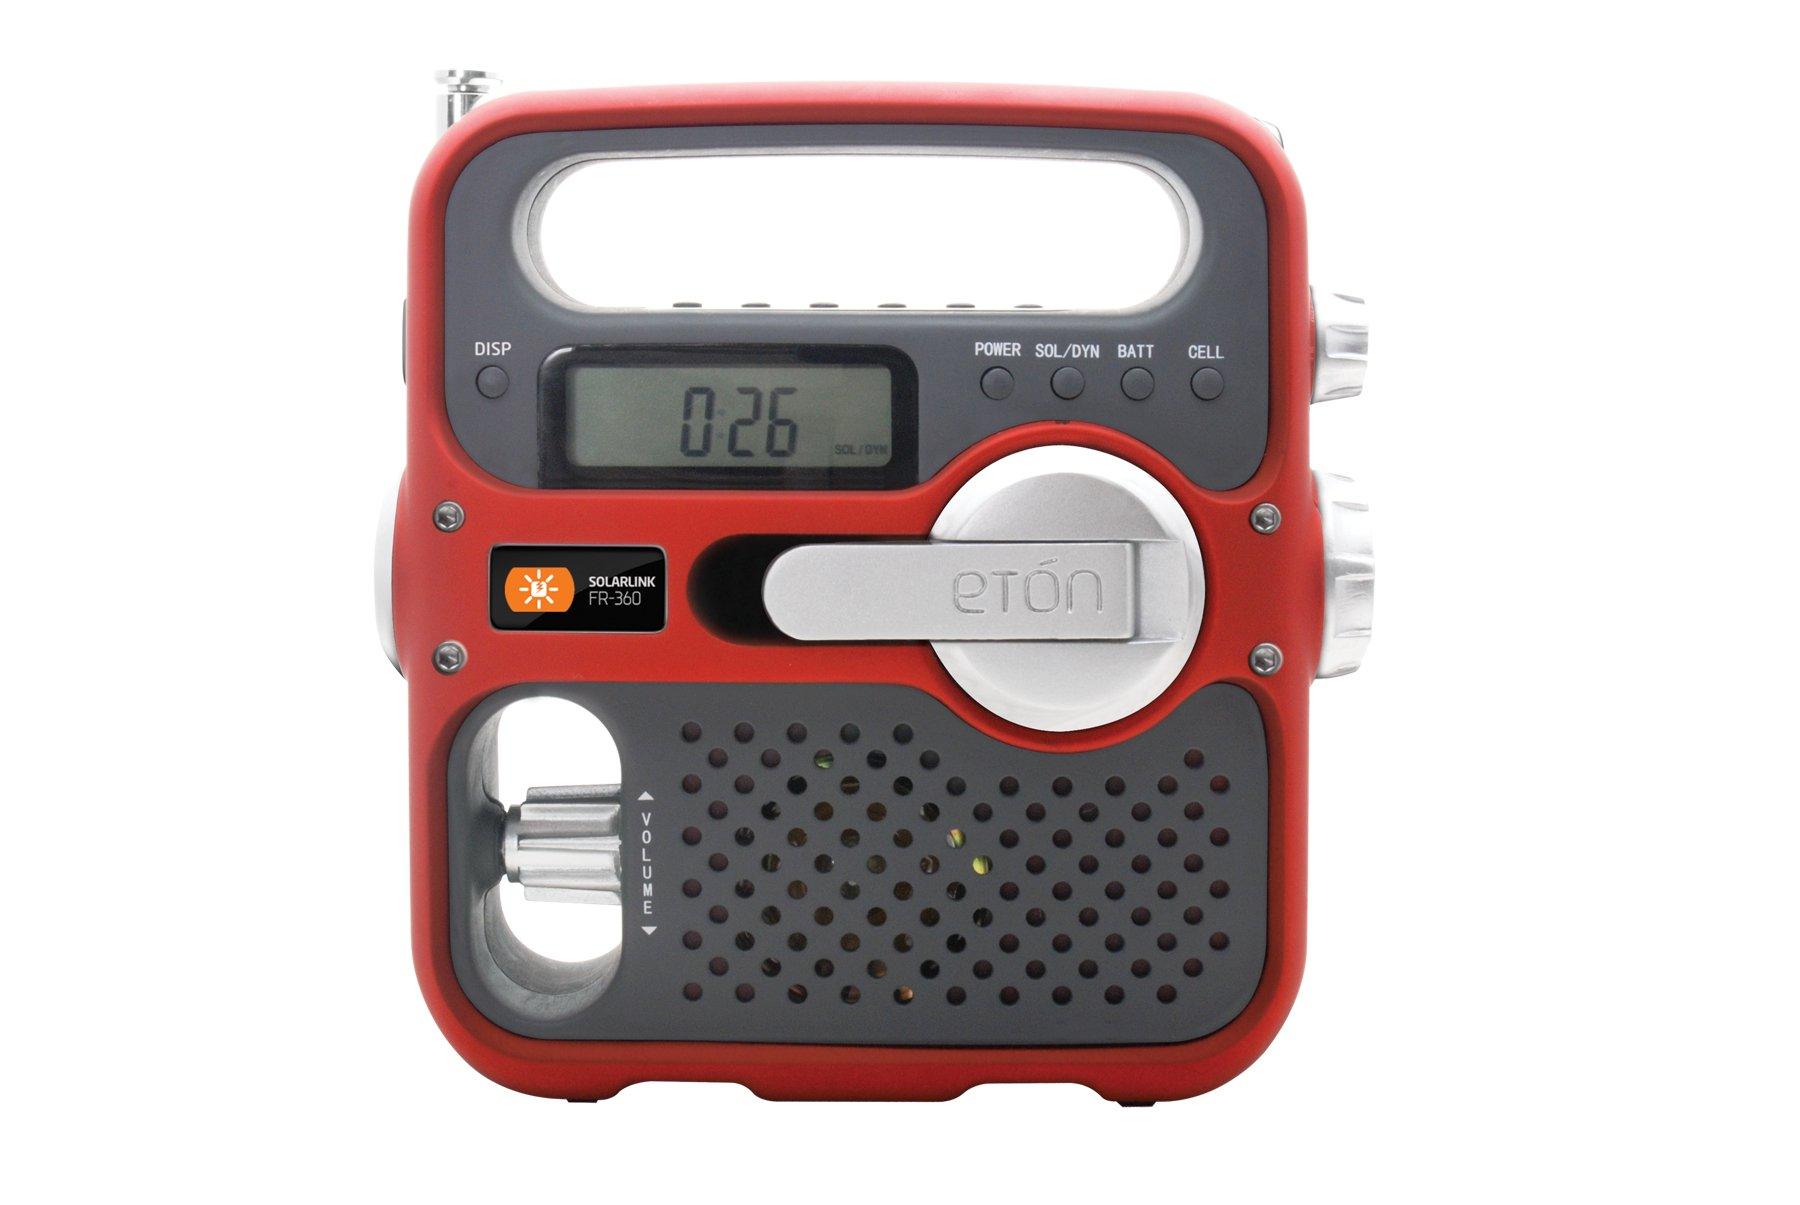 Eton Solarlink FR360 Self-Powered AM/FM/NOAA Radio with Solar Power, Flashlight, and Cell Phone Charger (Red)